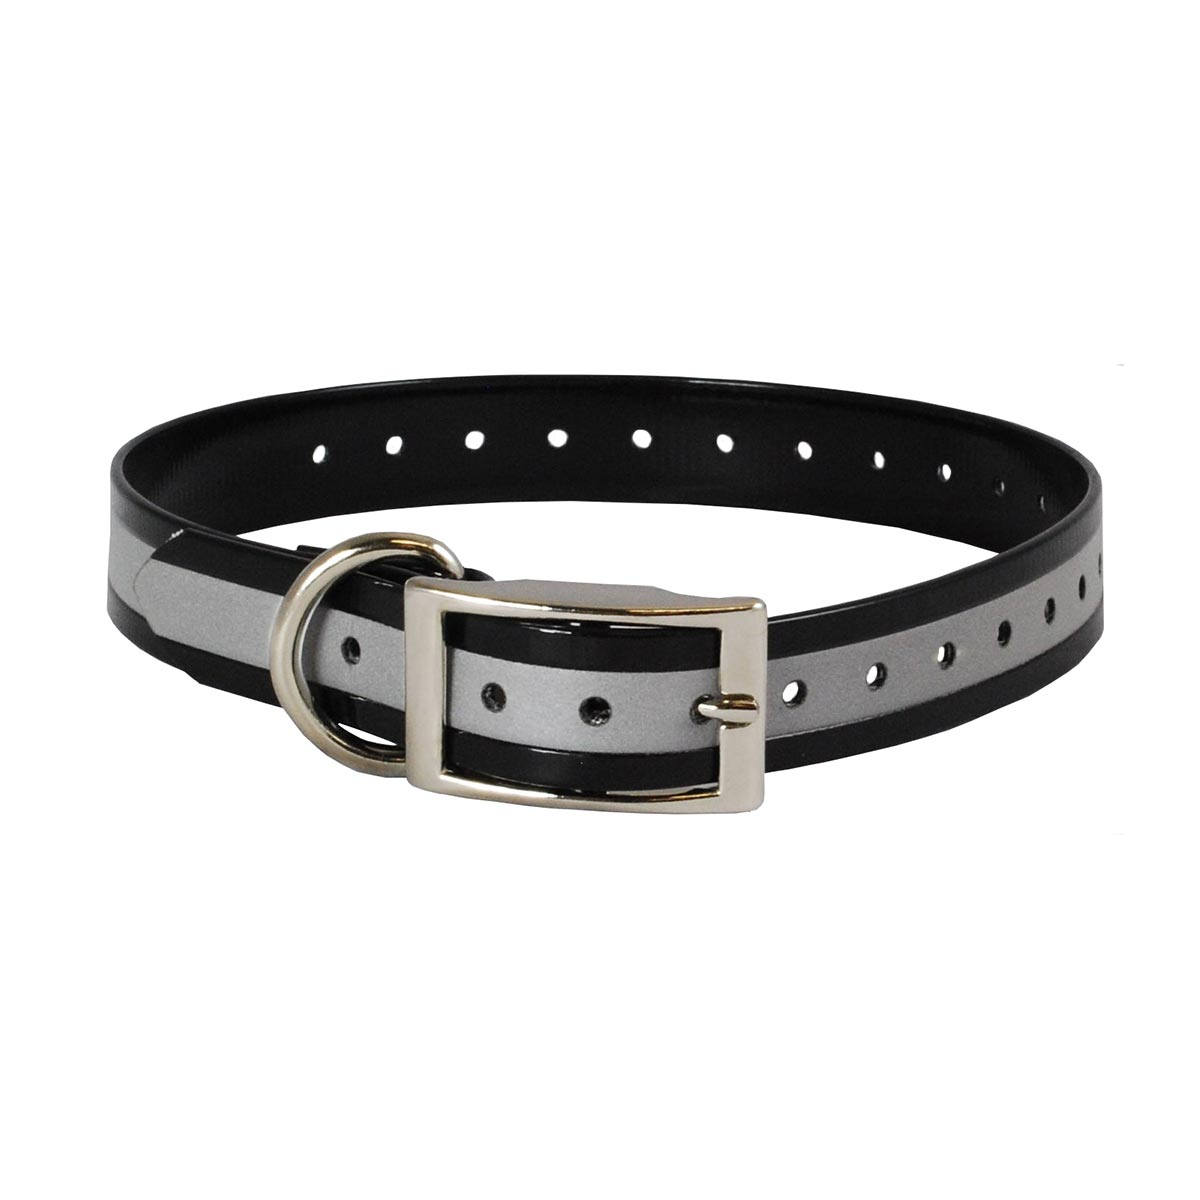 "The Buzzard's Roost Reflective Collar Strap 1"" Black 1"" x 24"" Dog GPS Tracking - London the Local"